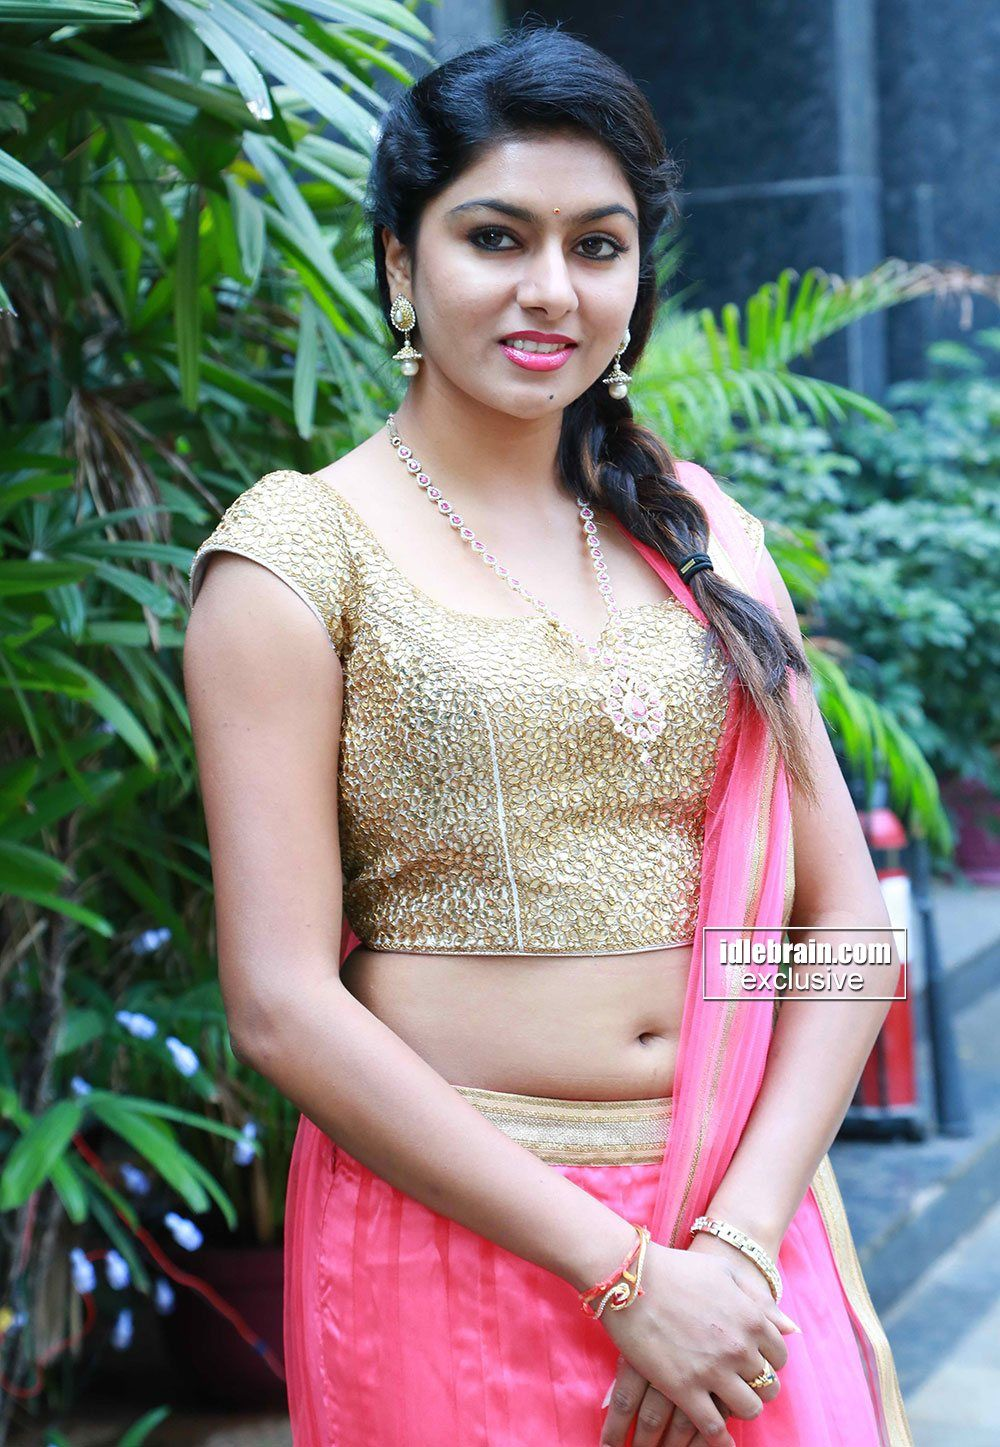 a good collections of images at one place idlebrain actress hot photos spicy pics telugu telugu movies movie gallery films posters wal actresses girl pics spicy pics telugu telugu movies